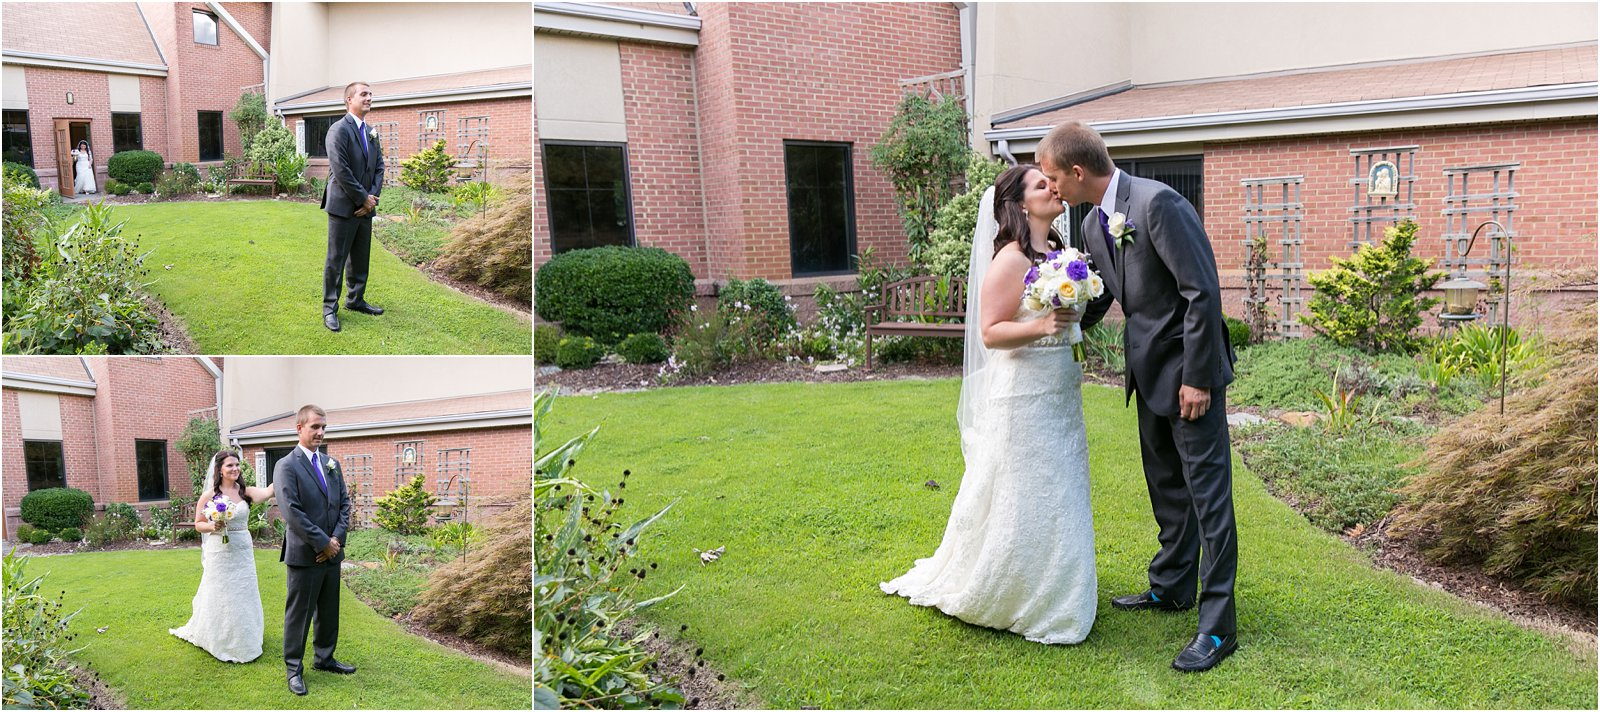 jessica_ryan_photography_bride_groom_suffolk_wedding_virginia_wedding_photography_hampton_roads_0238